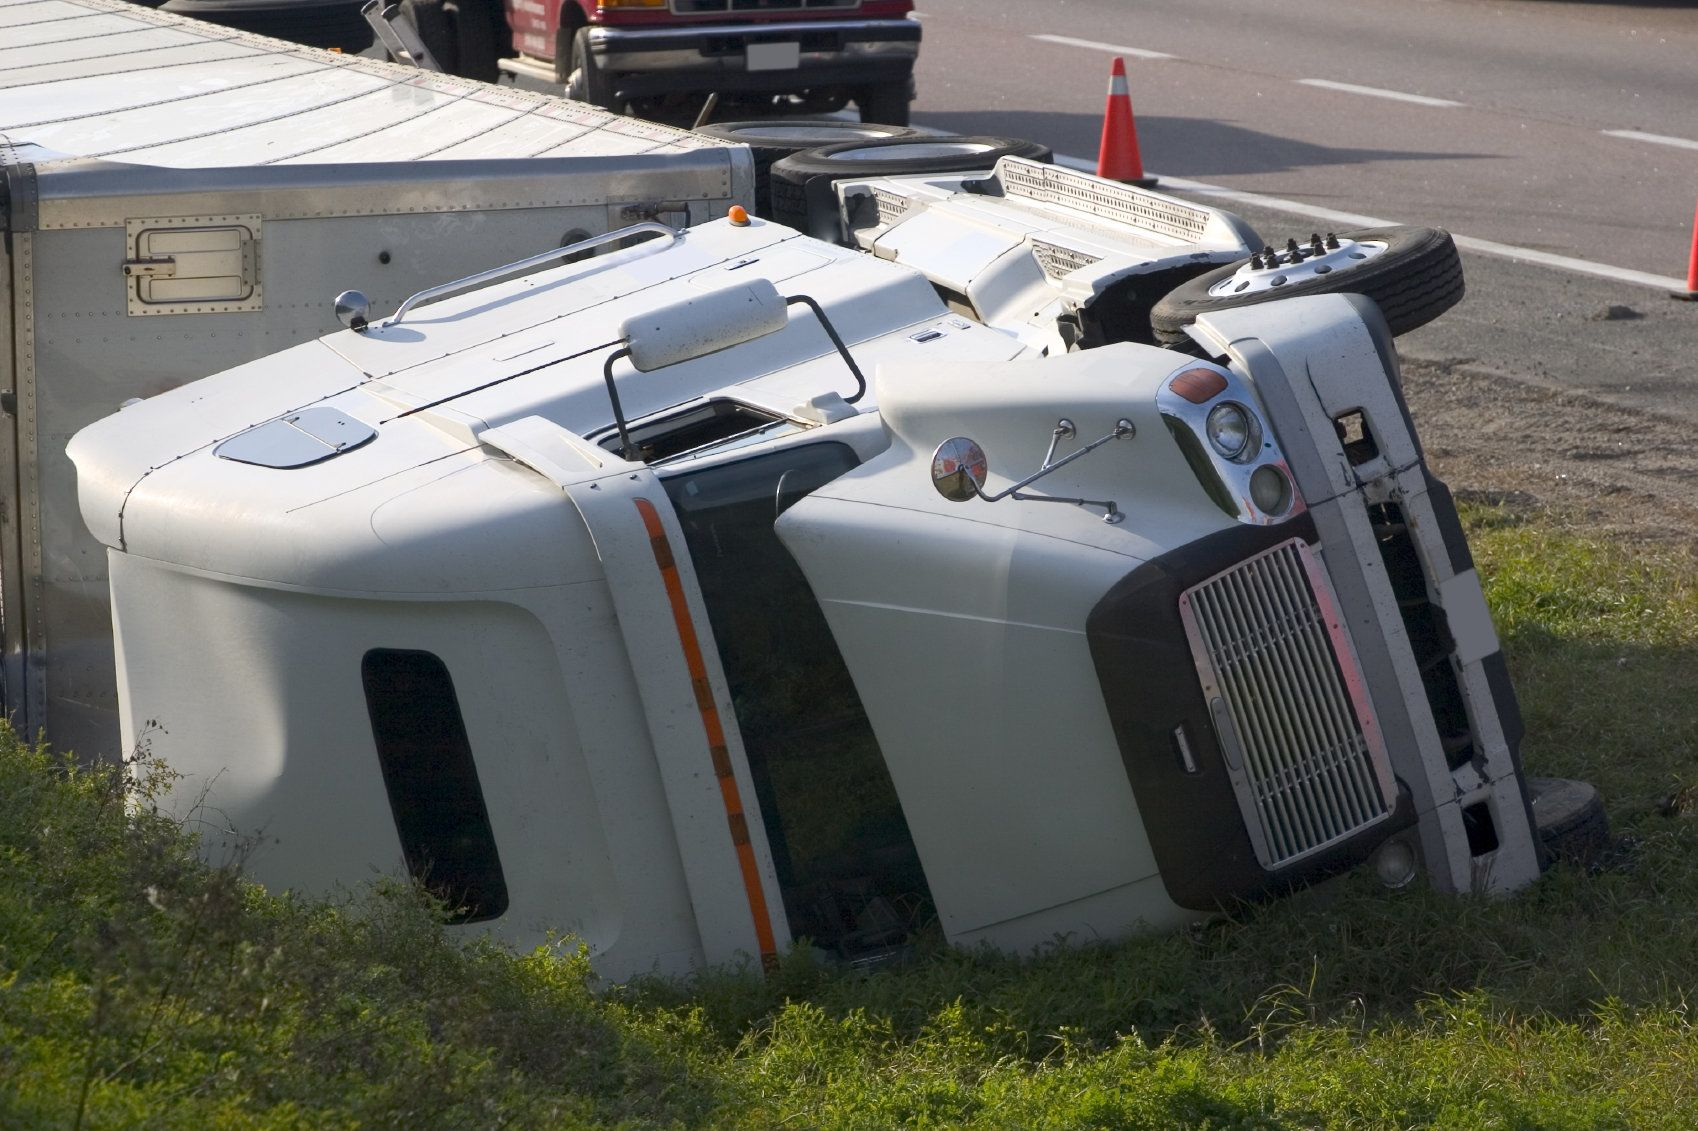 Truck lying on its side after an accident